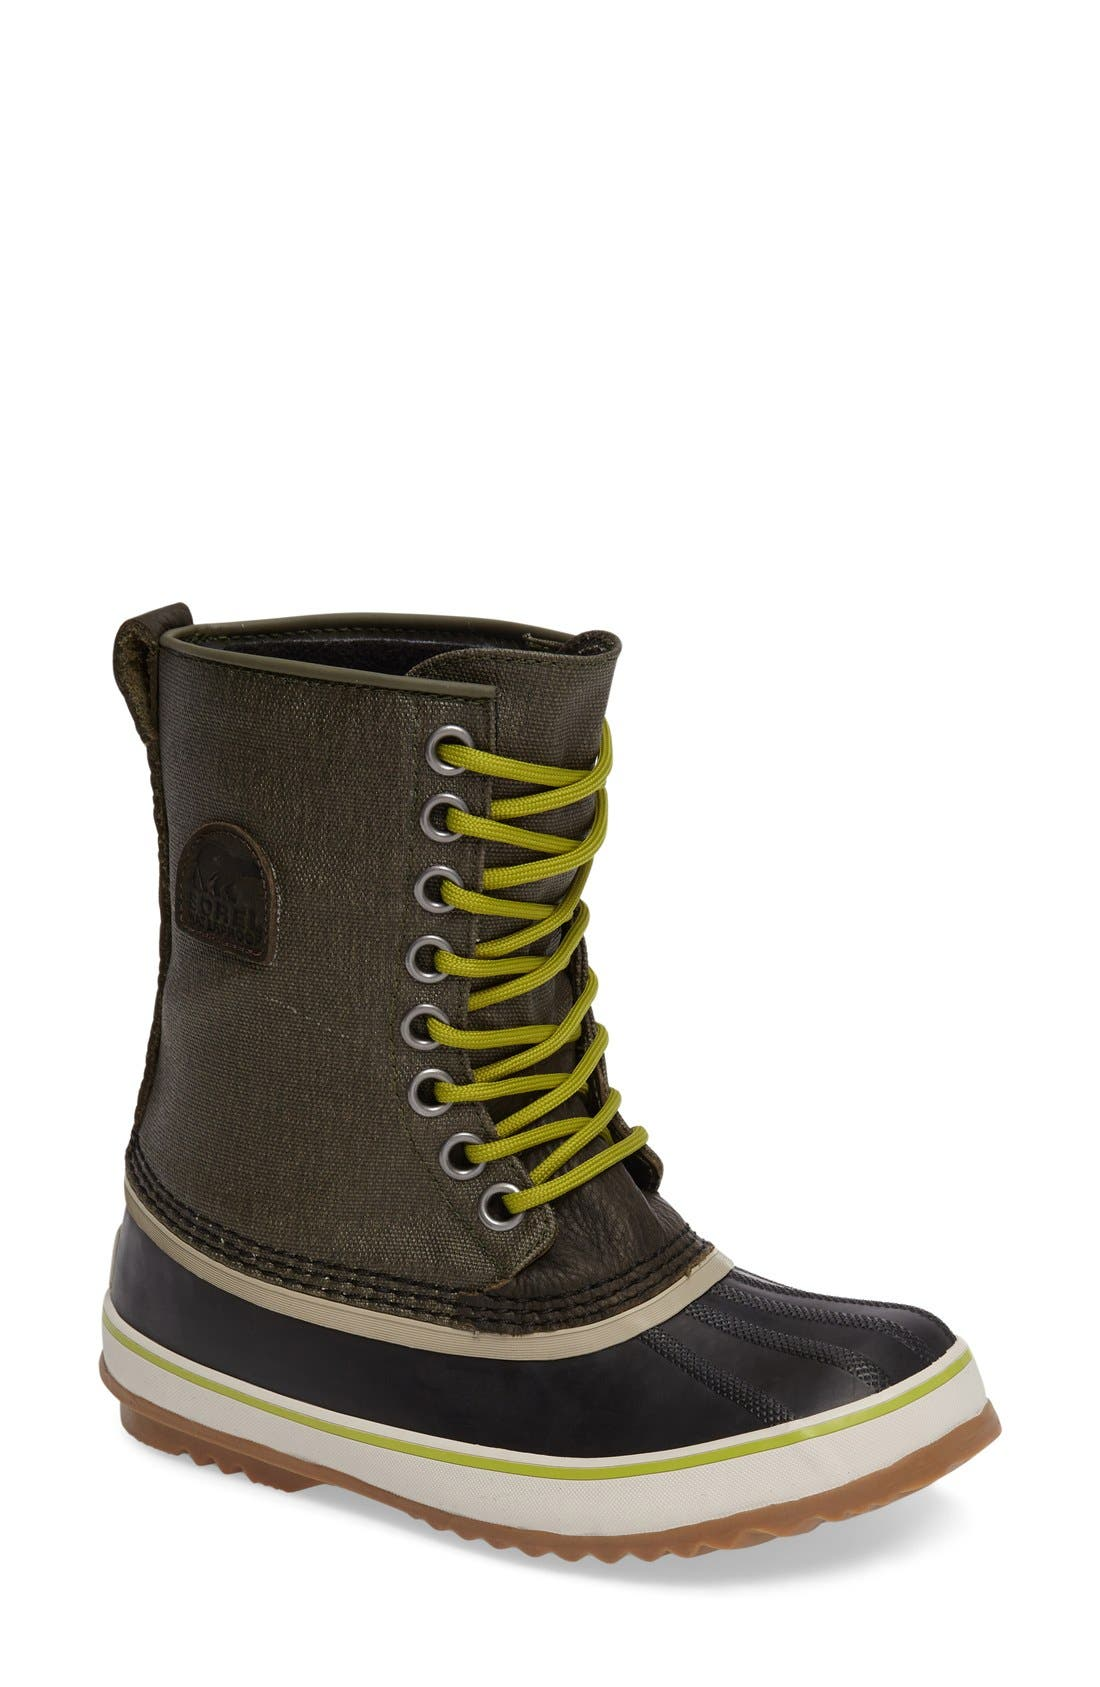 Main Image - SOREL '1964 Premium' Waterproof Boot (Women)